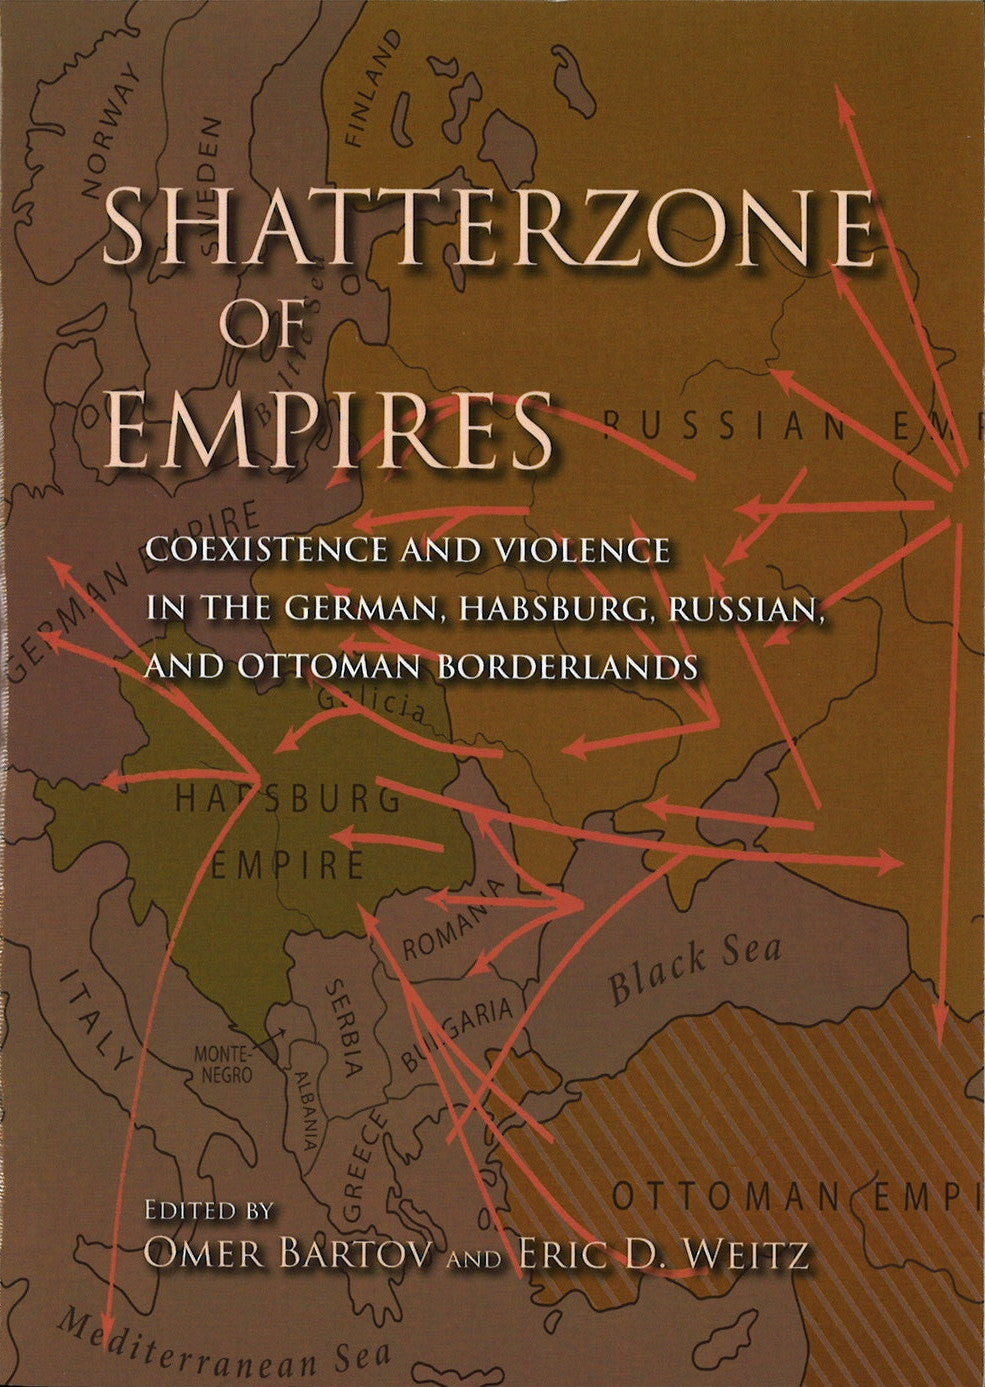 SHATTERZONE OF EMPIRES: Coexistence and Violence in the German, Habsburg, Russian, and Ottoman Boderlands